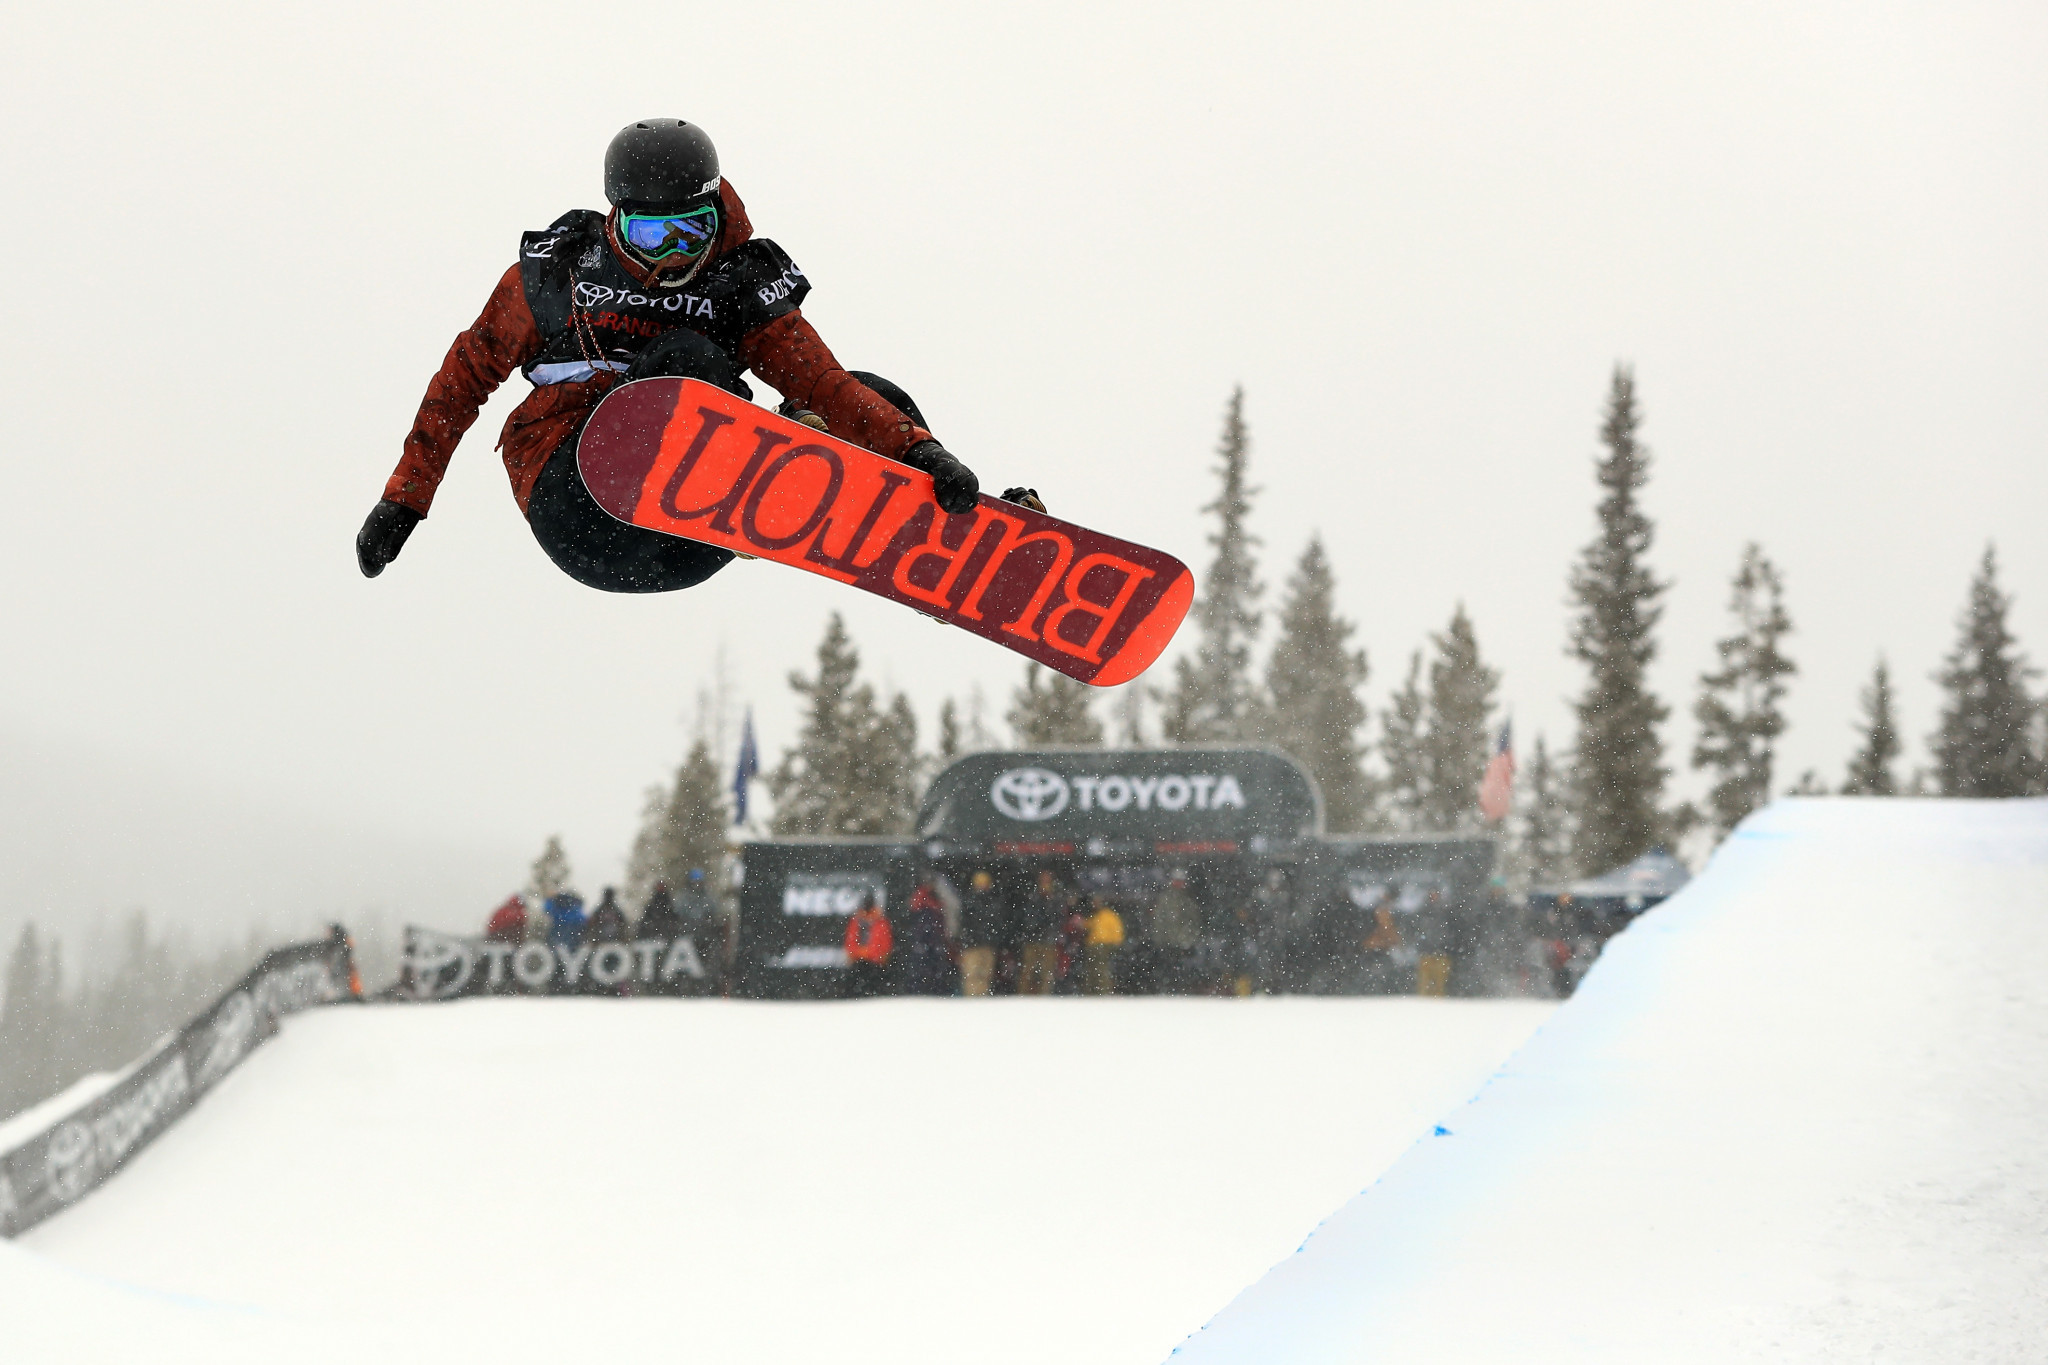 Cai tops qualification on home snow at FIS Snowboard Halfpipe World Cup